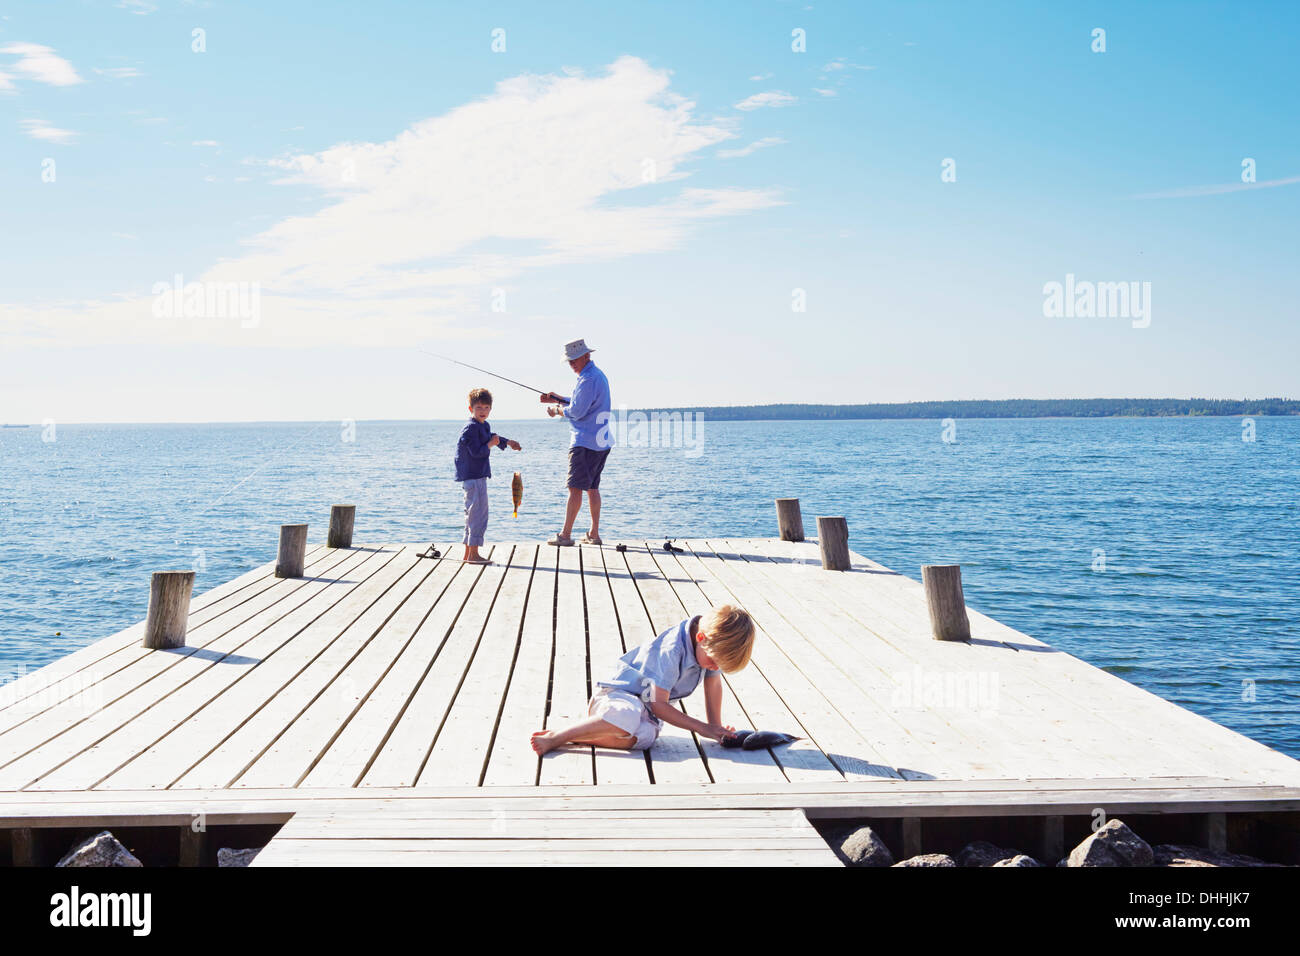 Grandfather and grandson fishing, Utvalnas, Sweden - Stock Image